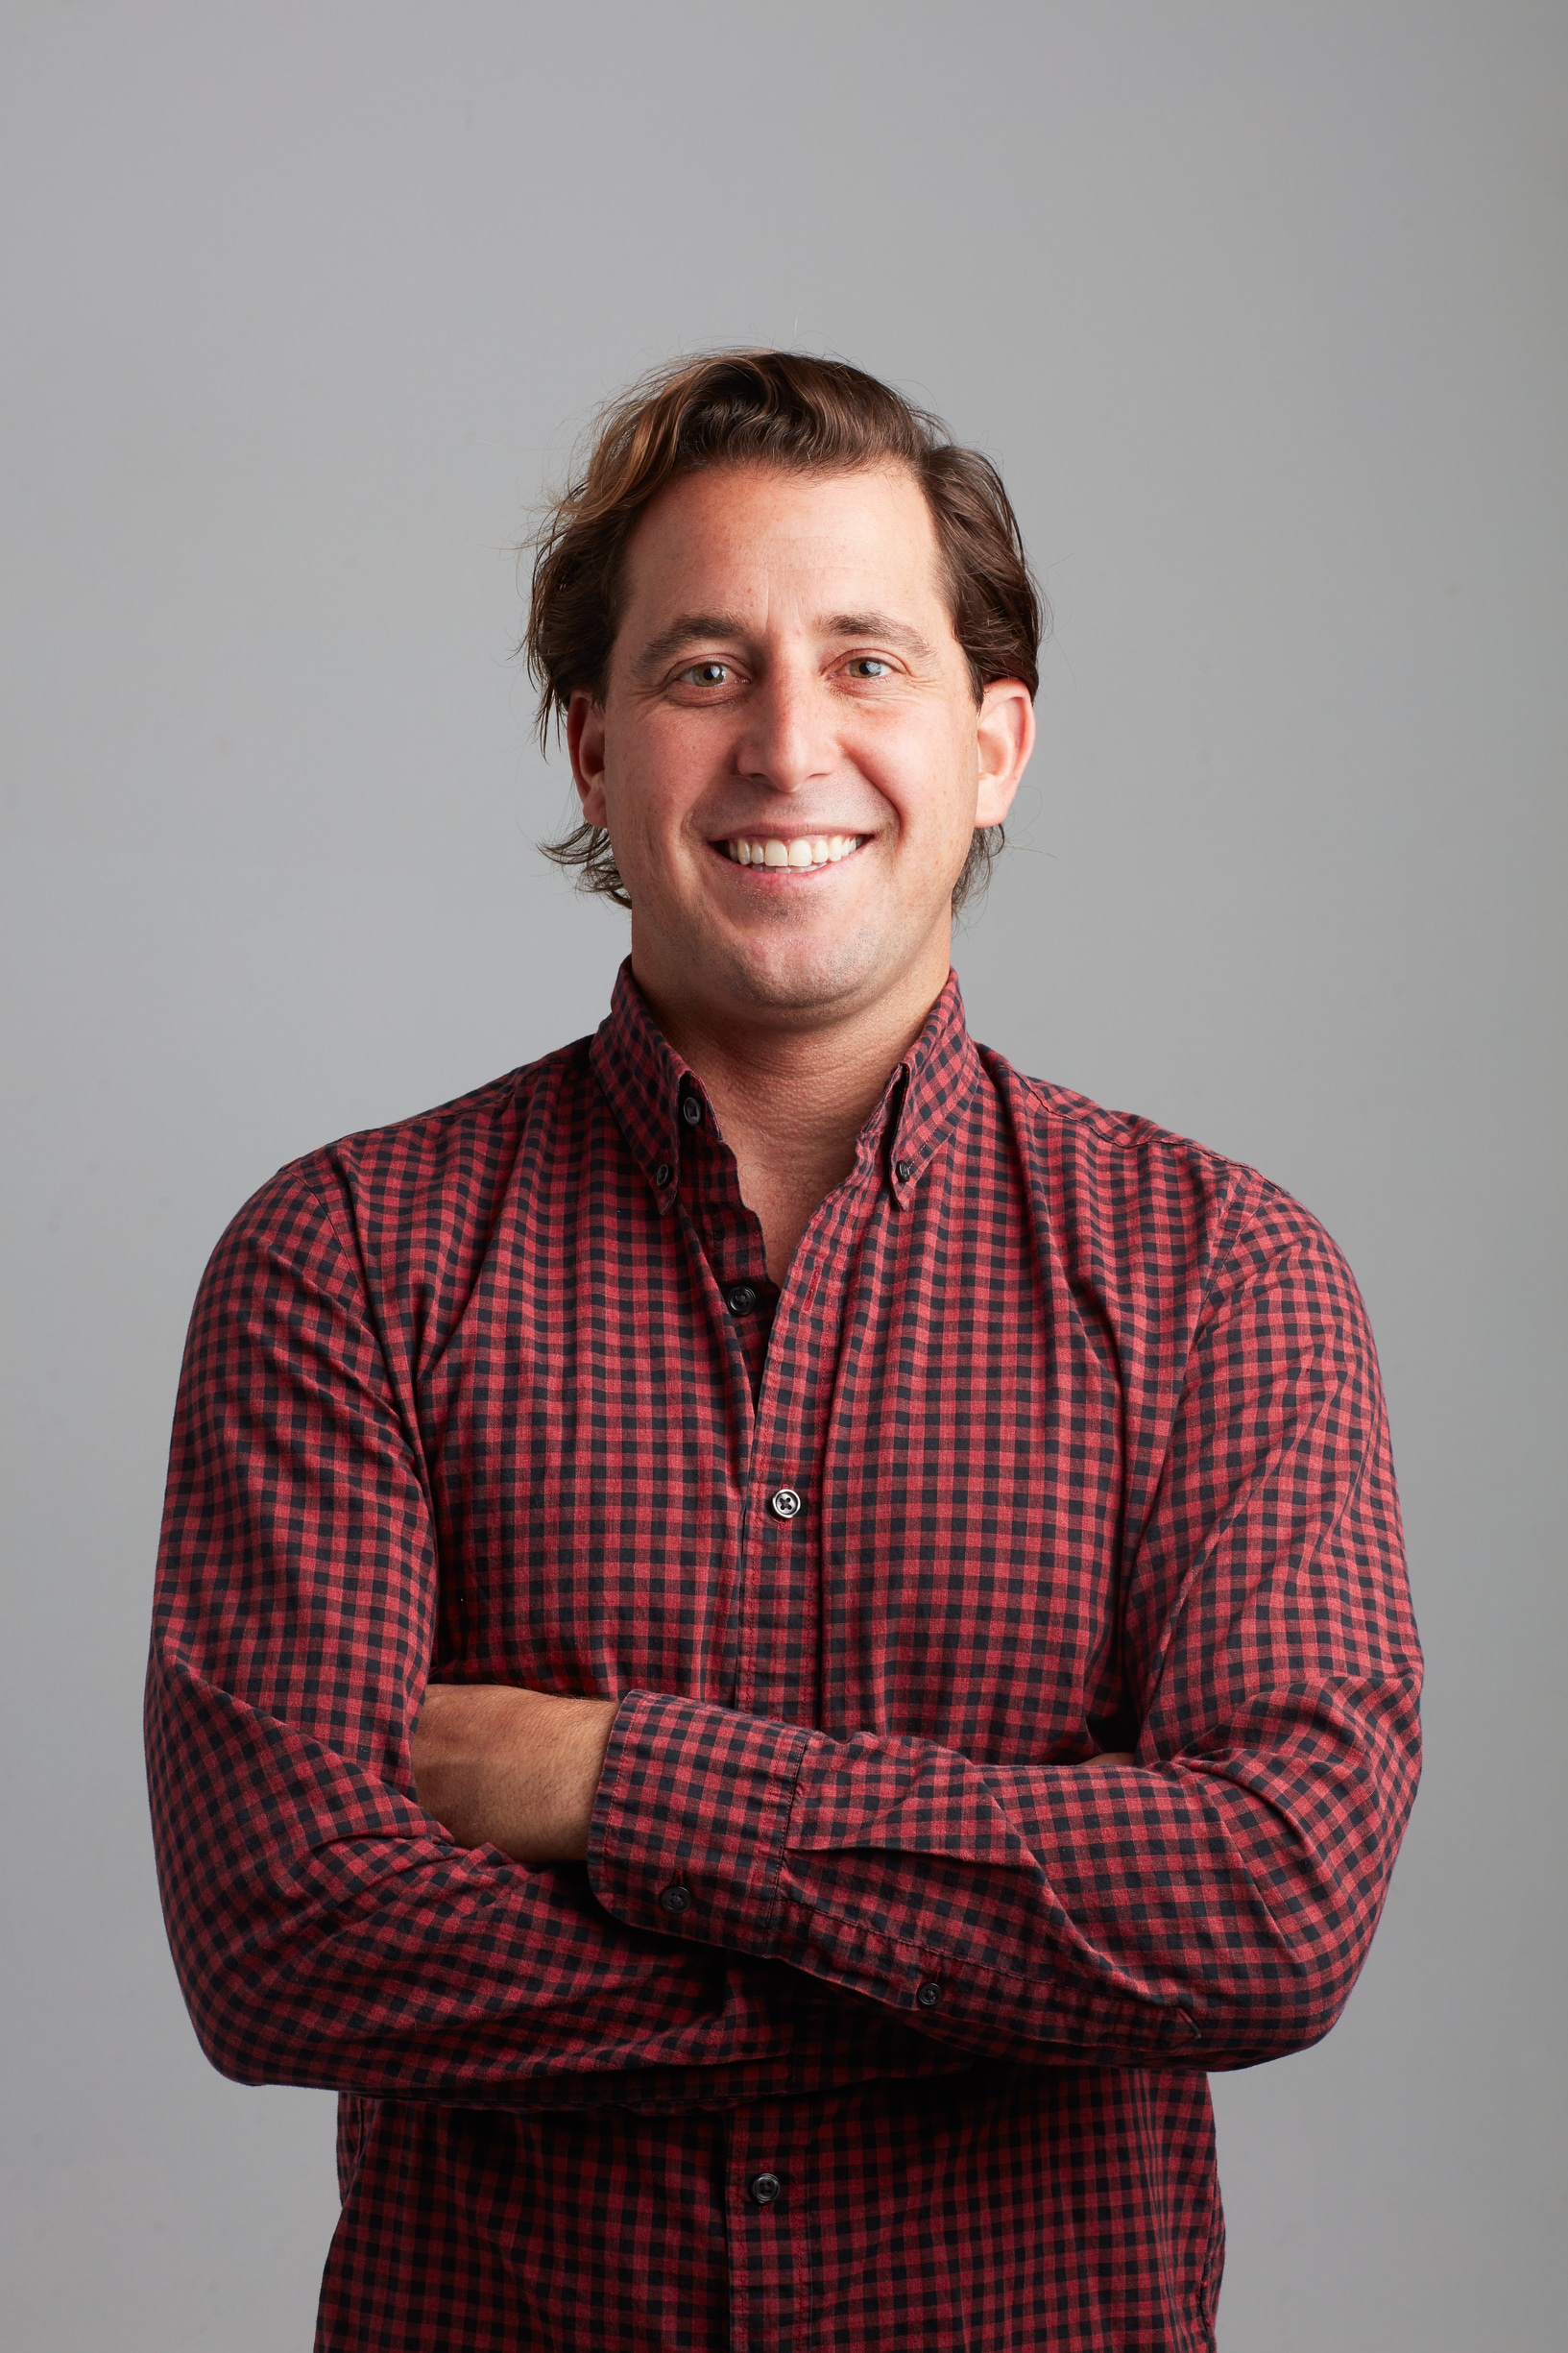 Path of Life Brand Hires Blake Zimmerman as Director of Brand Sales